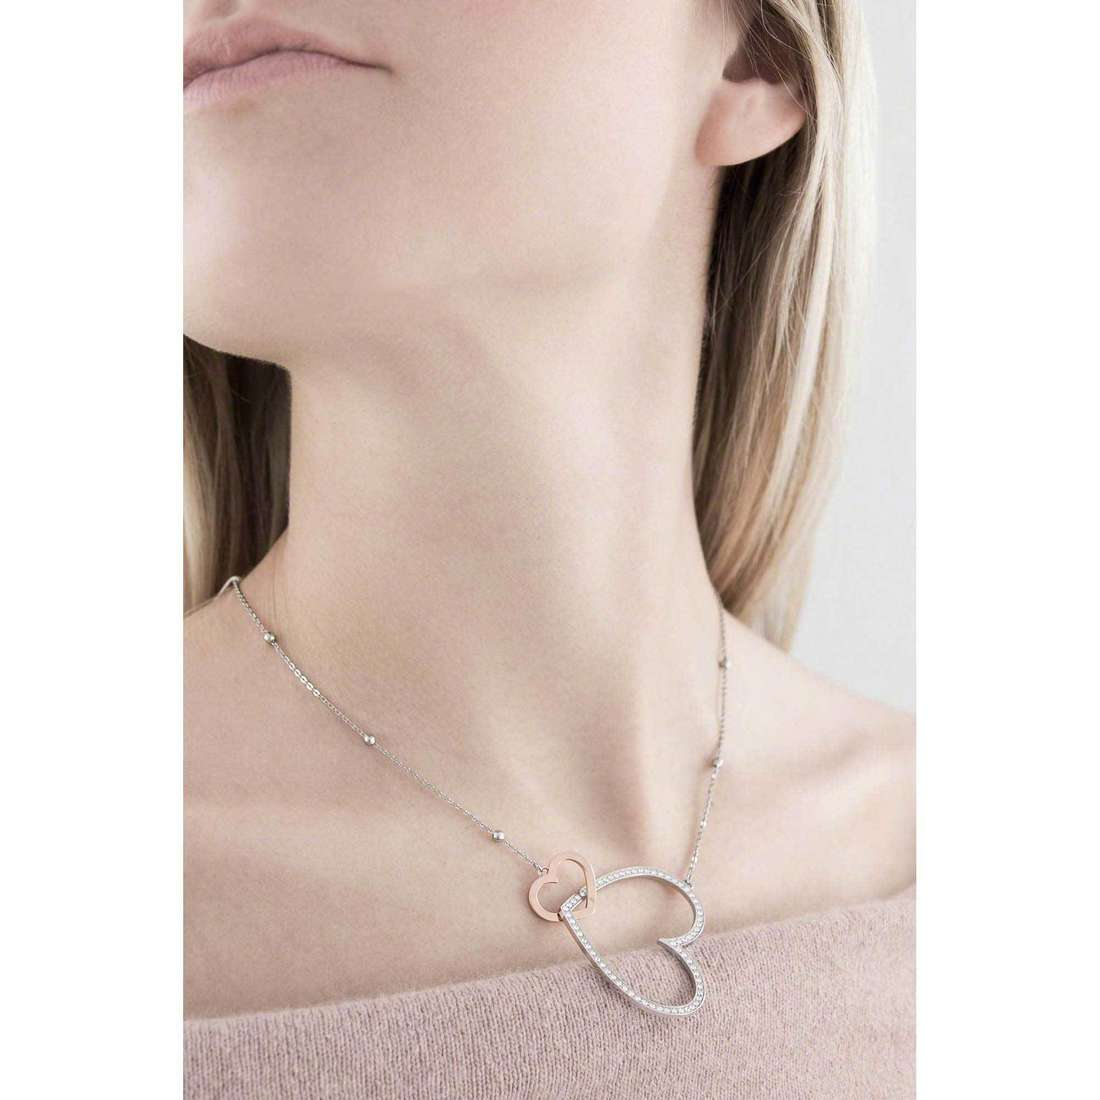 Brosway colliers Minuetto femme BMU01 indosso